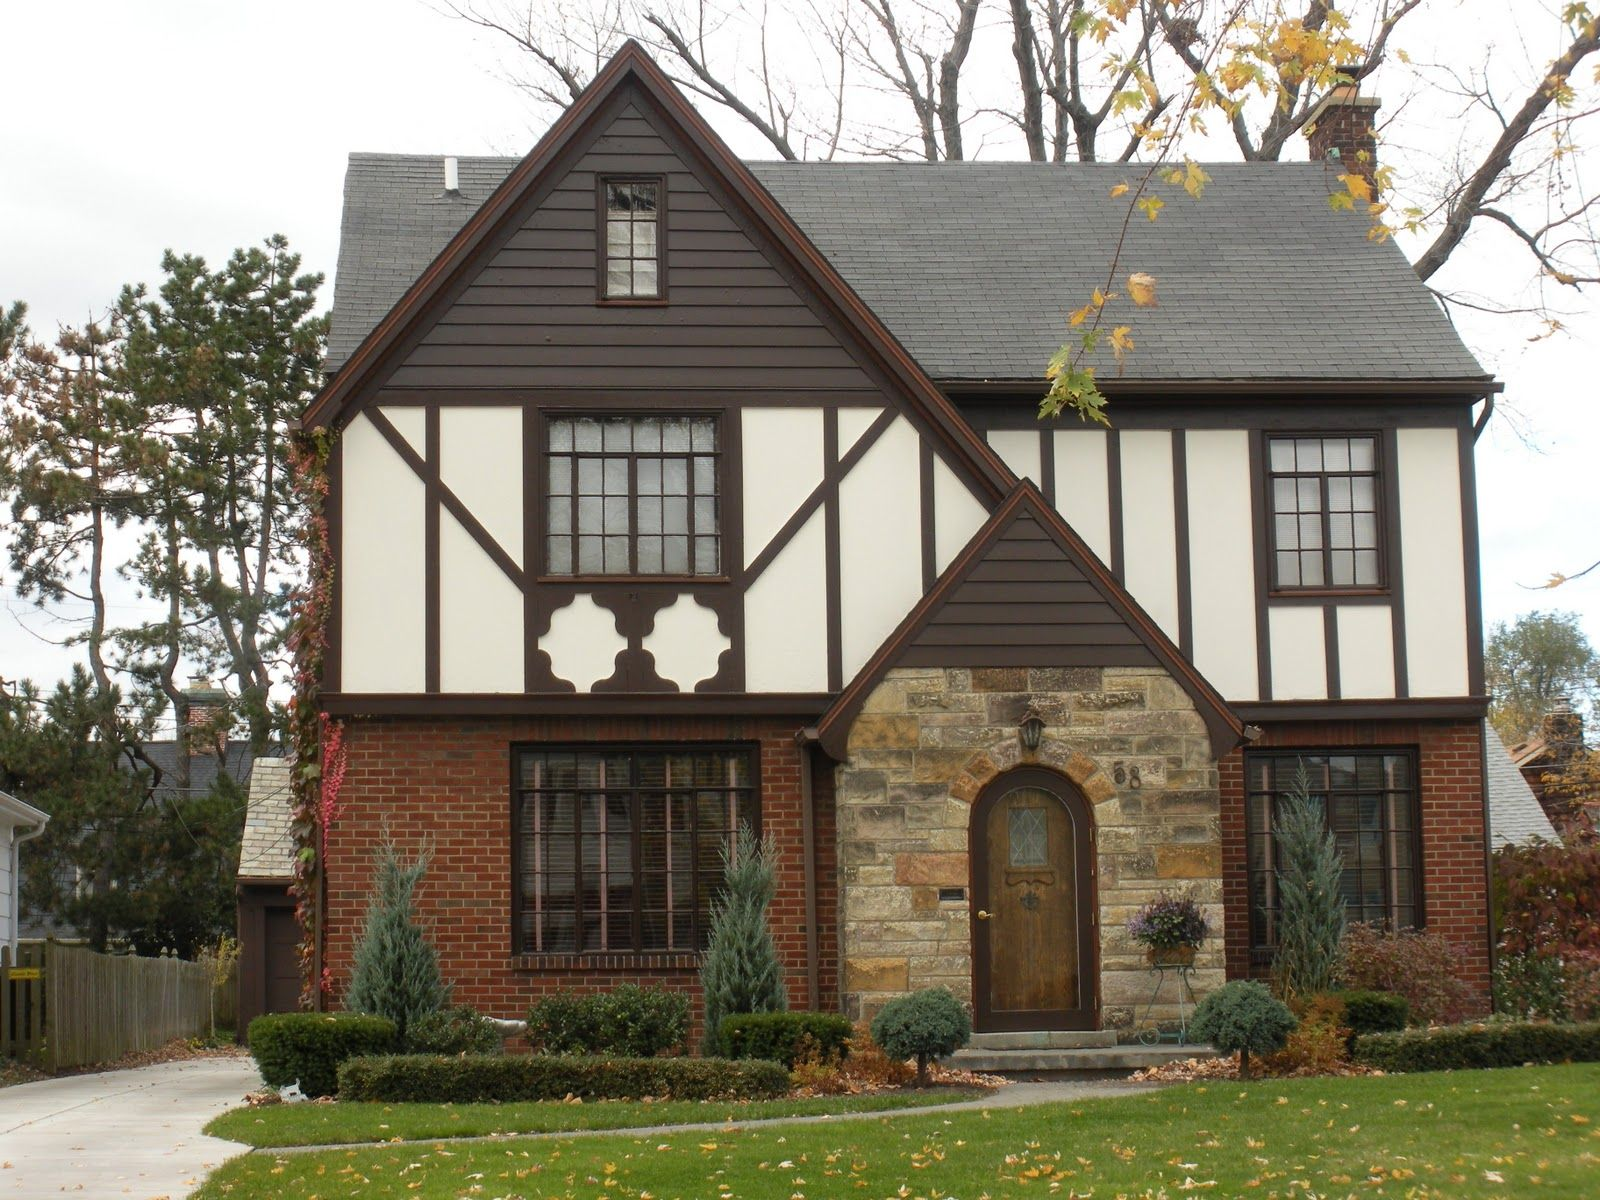 Tudor Revival Interiors river city sammon: tudor revival style house makeover, part 1